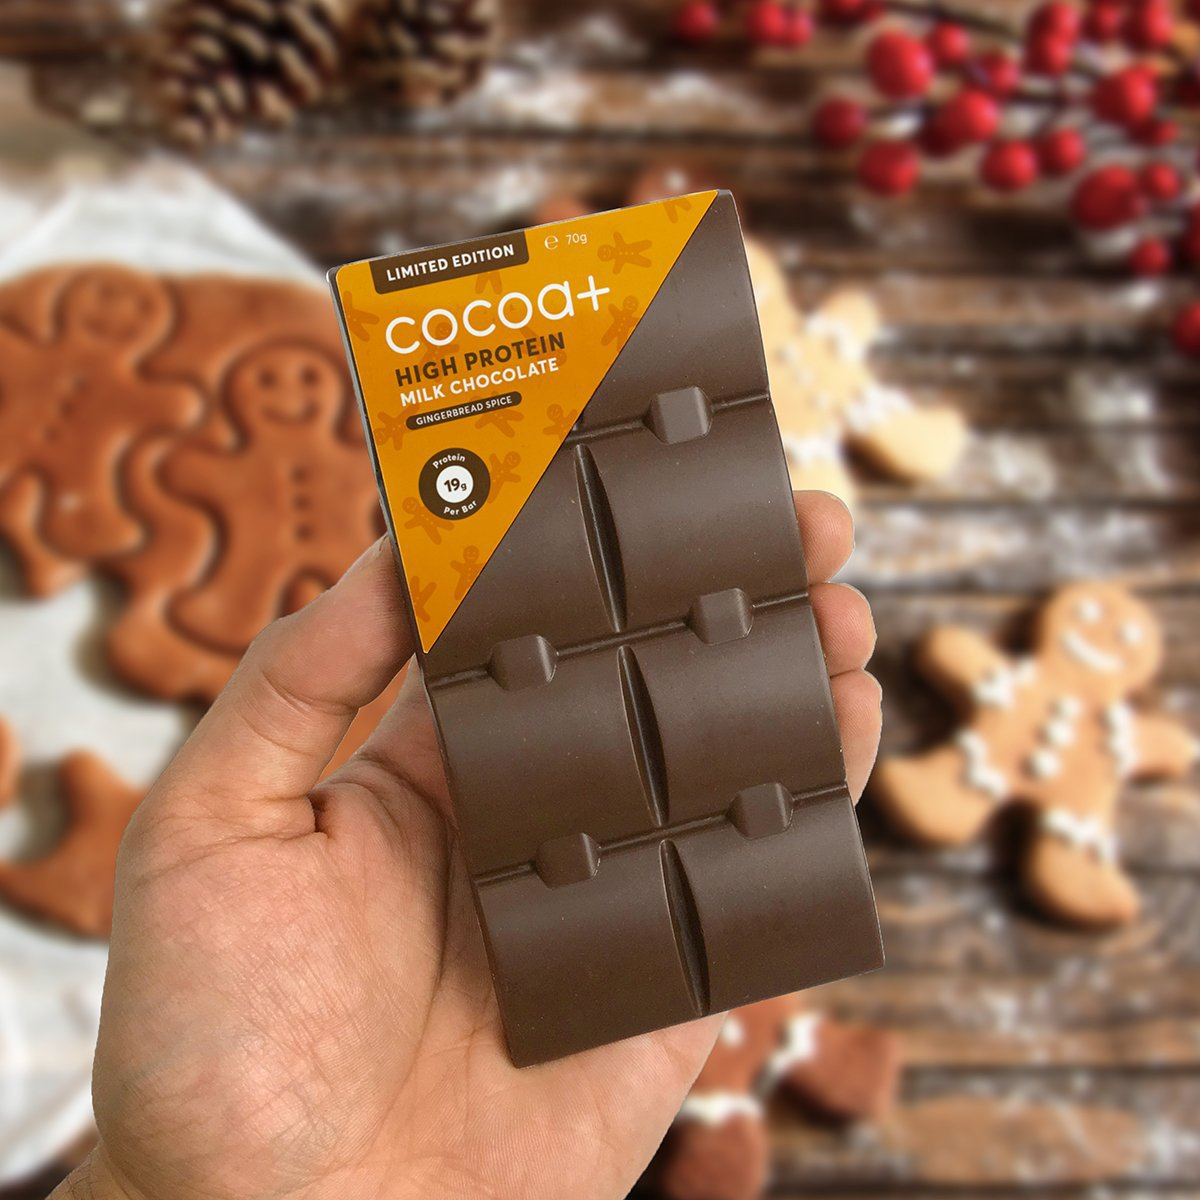 Gingerbread Spiced High Protein Milk Chocolate